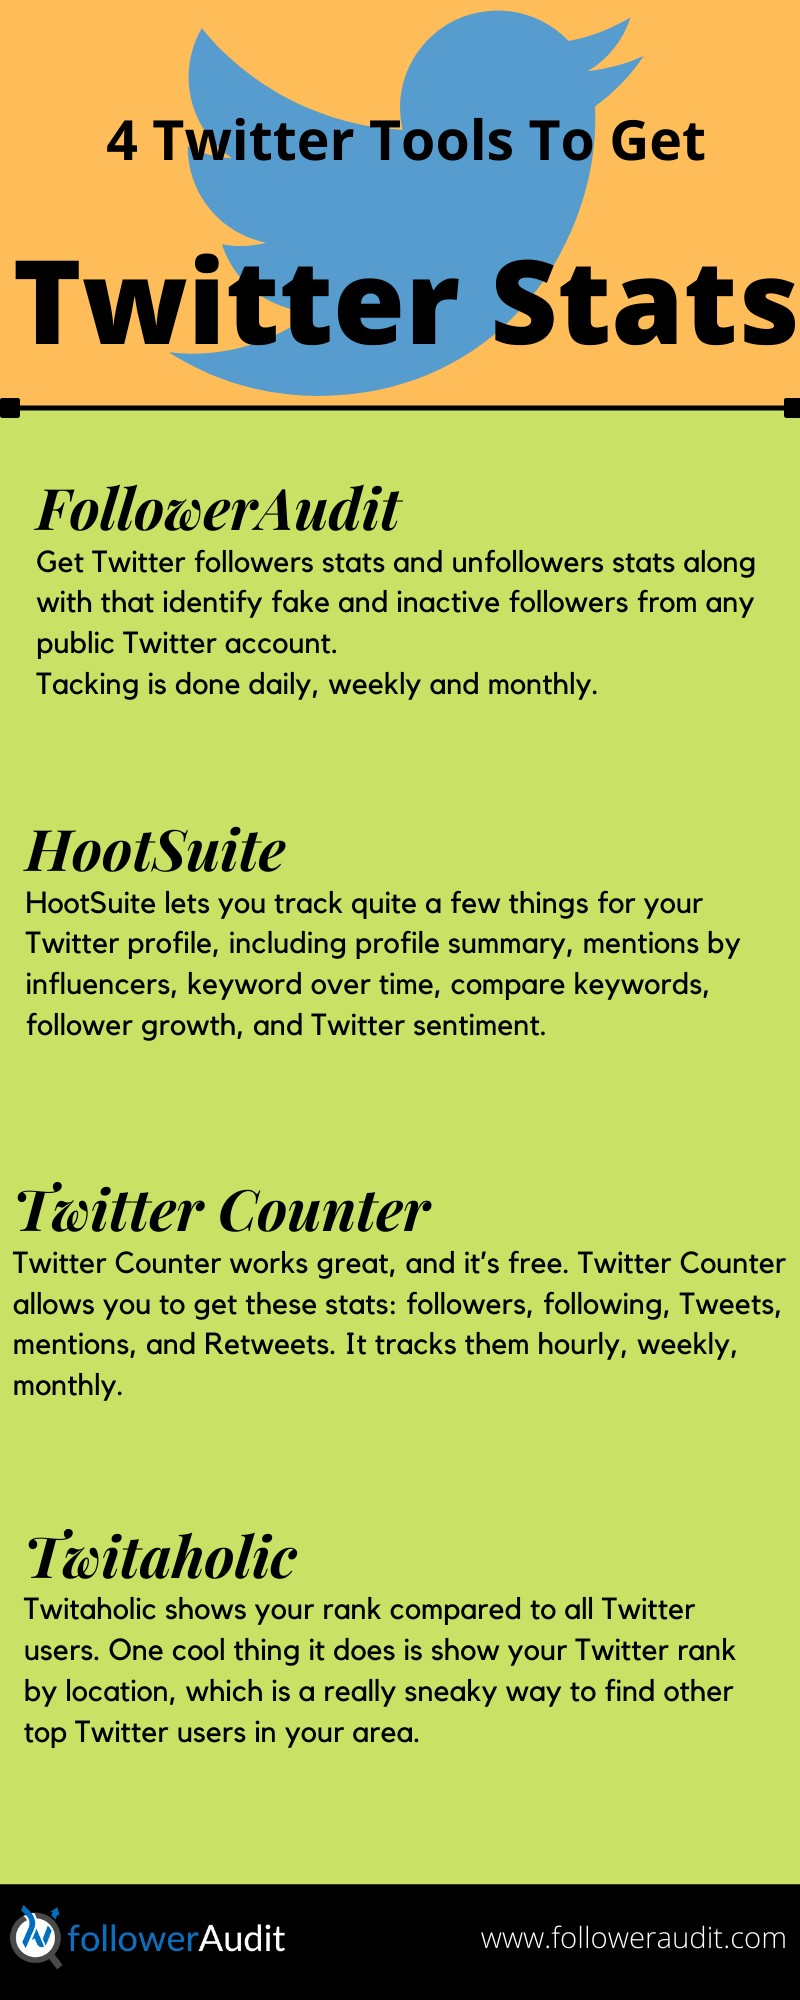 4 Twitter Tools To Get Twitter Stats